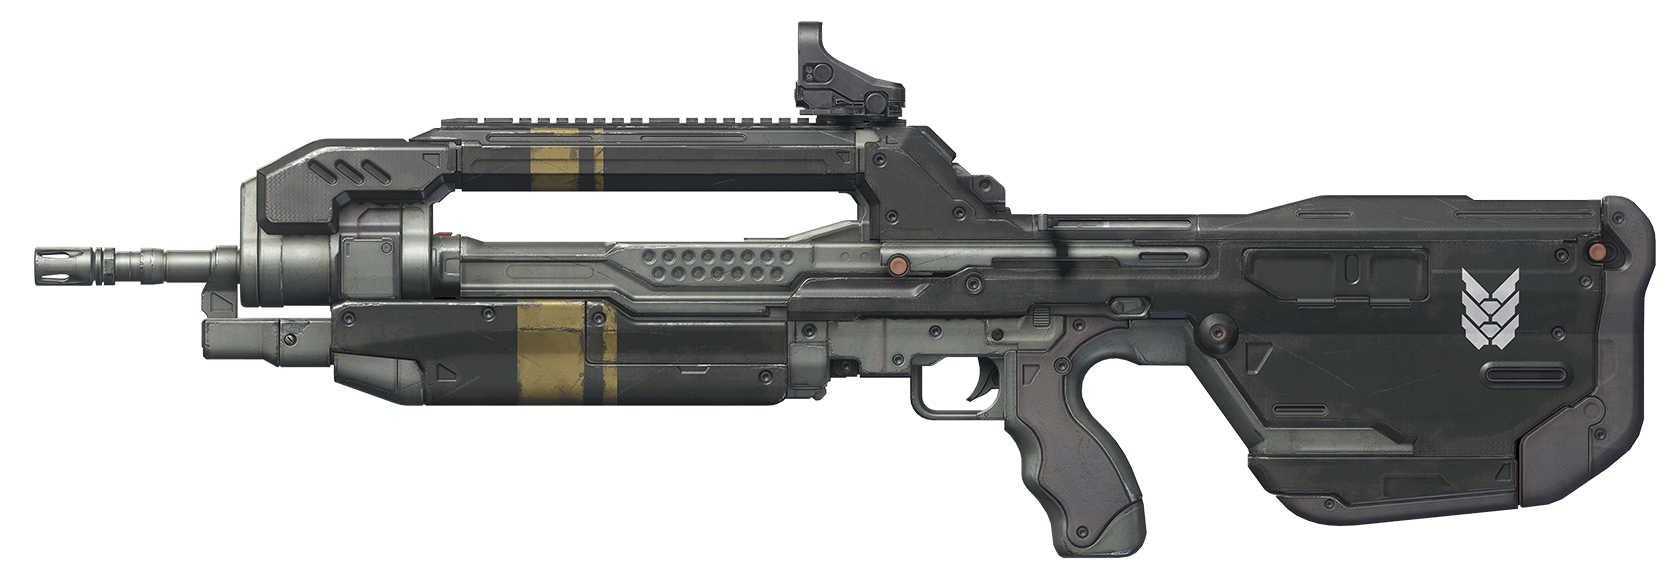 Halo assault rifle png. Image br alteredrp halorp